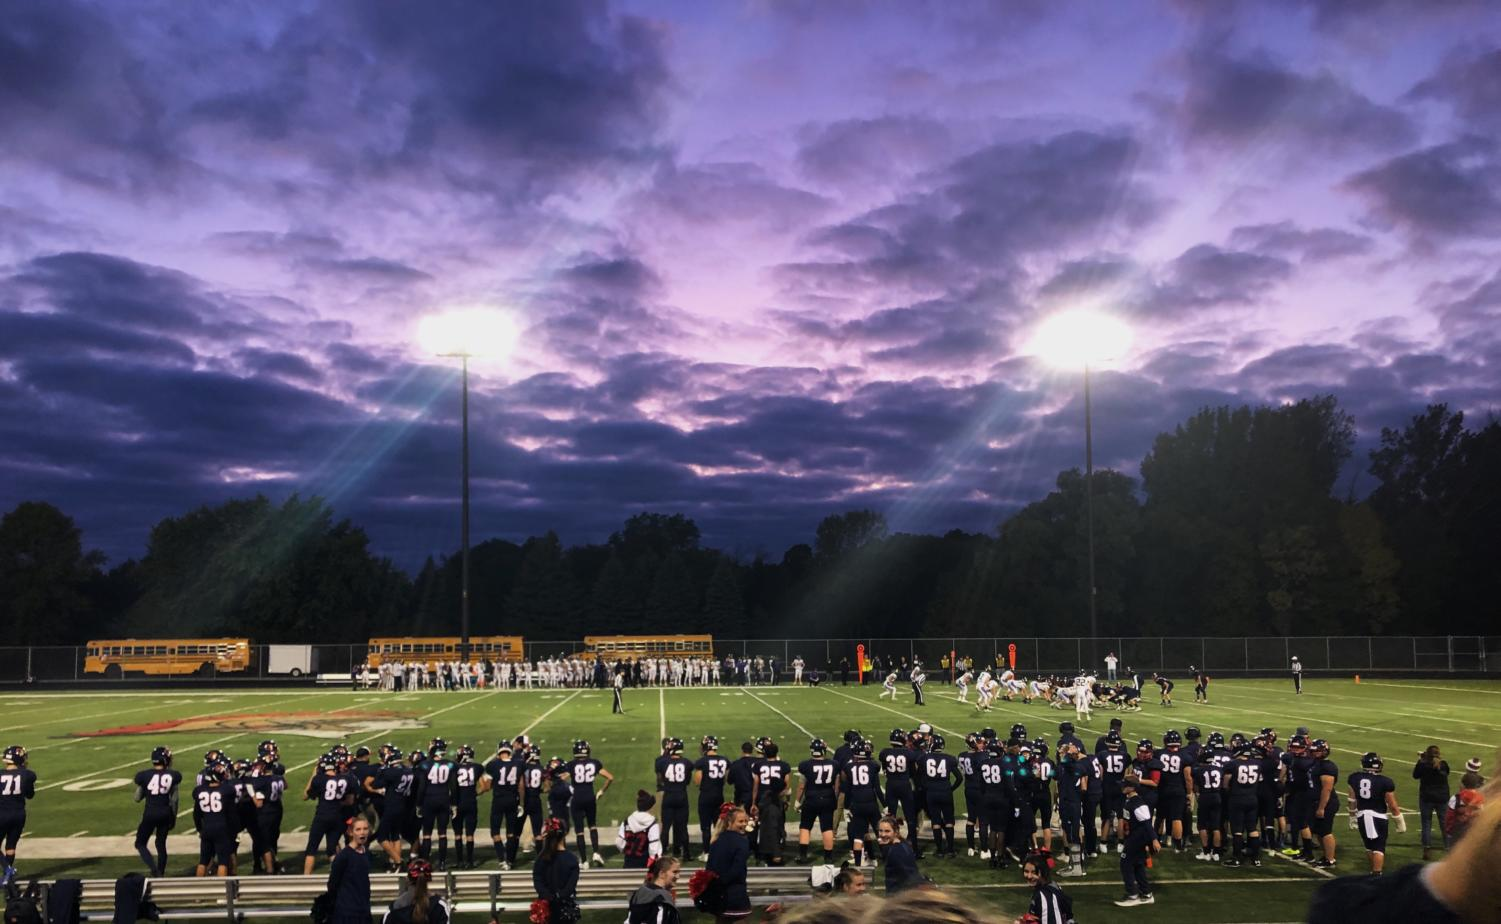 Beautiful view from the stands during Orono vs. Chaska Homecoming football game.